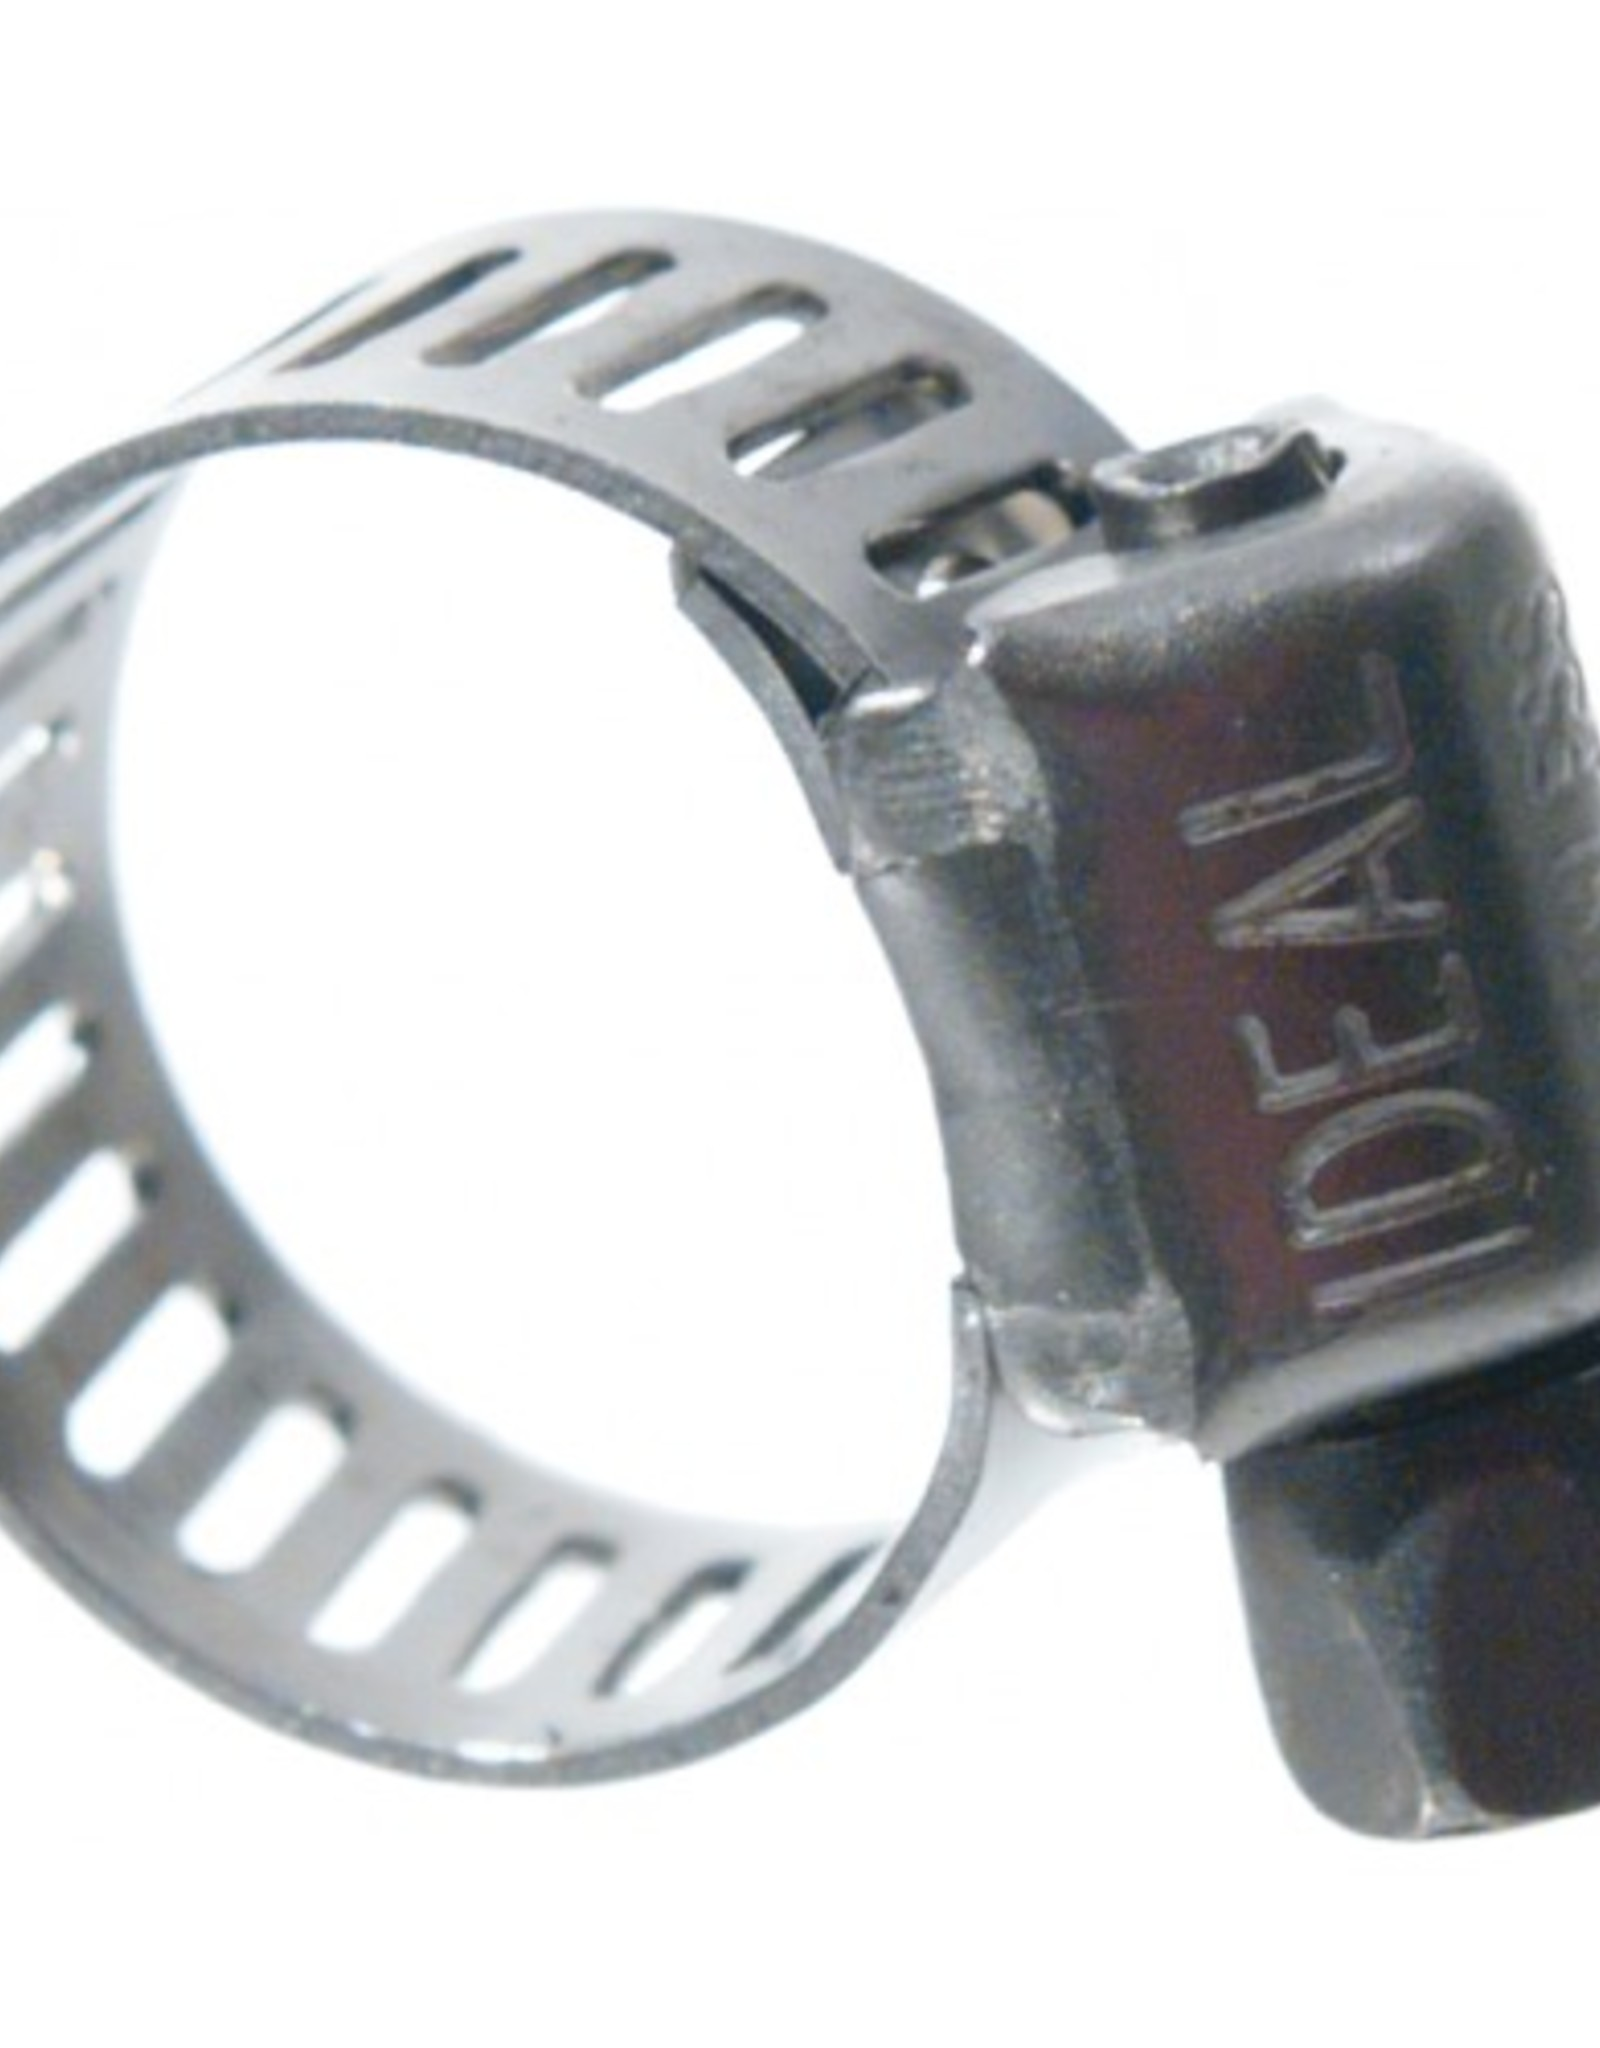 "HOSE CLAMP - SMALL 1/4"" TO 5/8"""